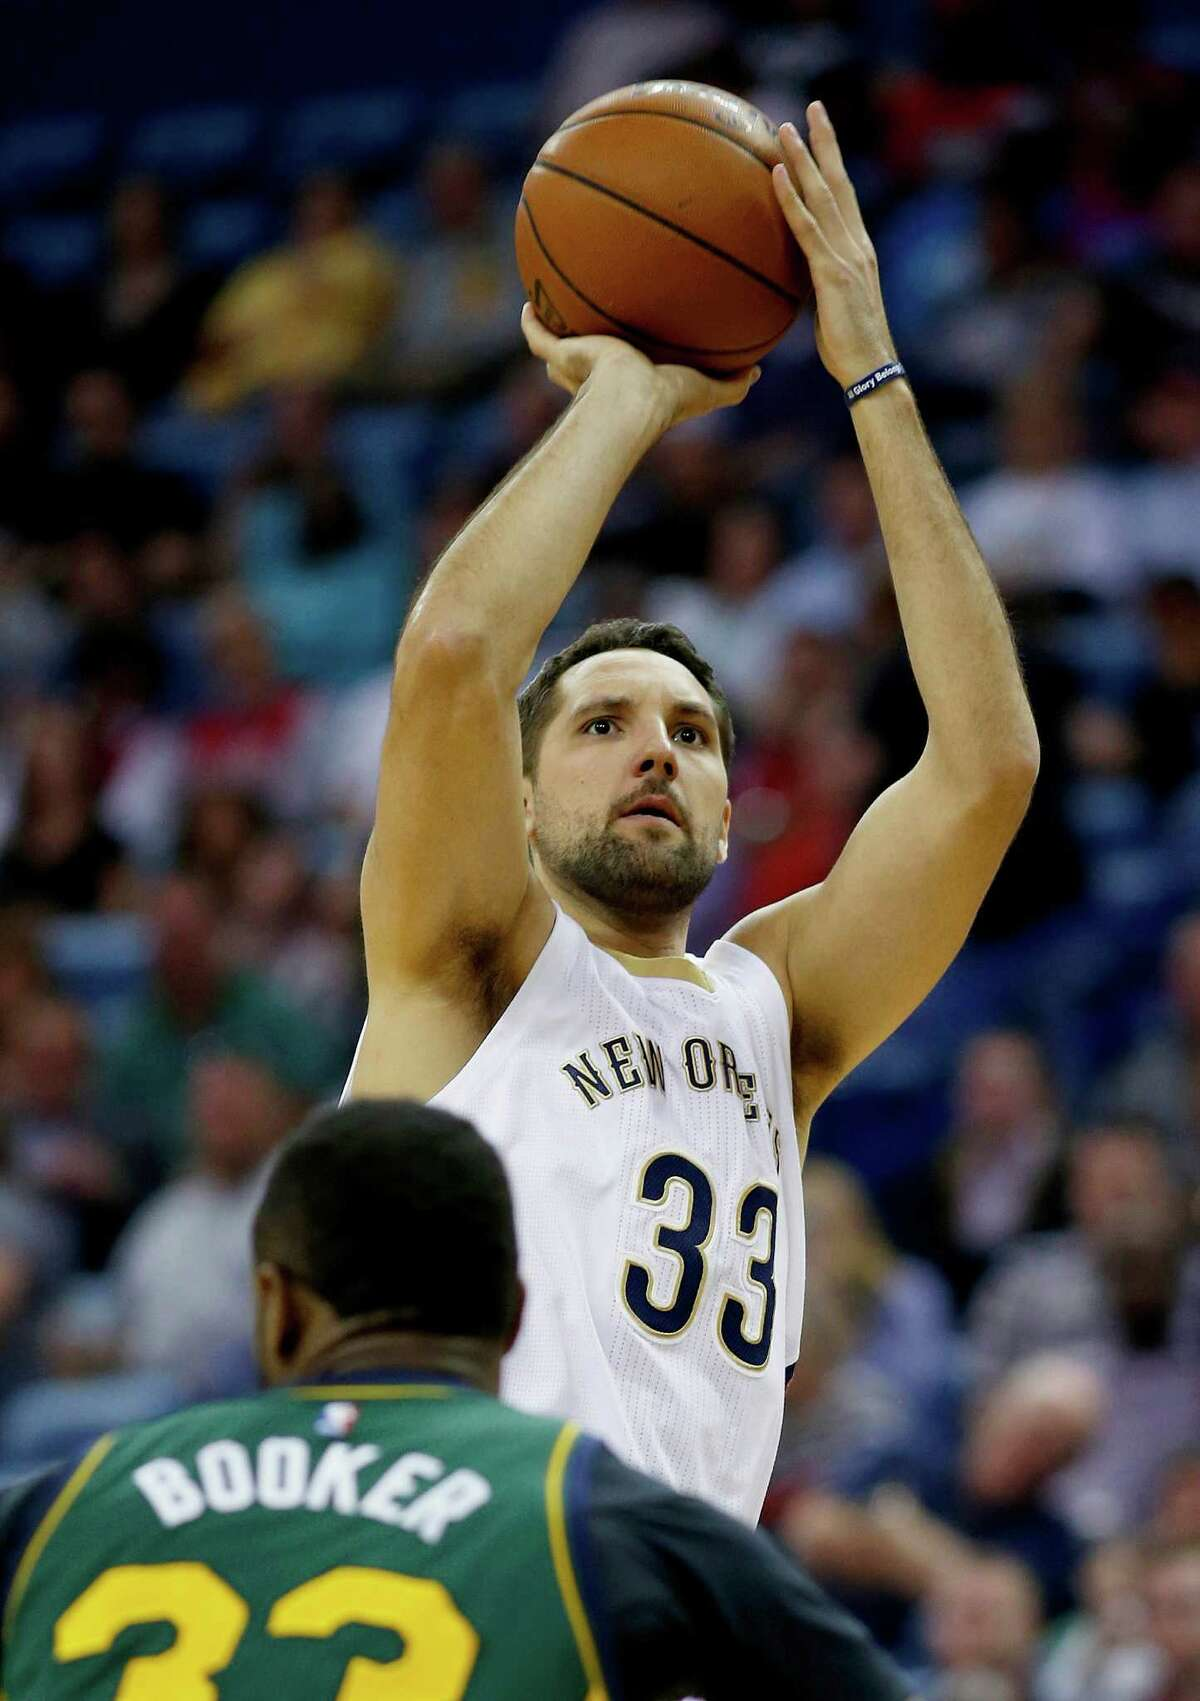 New Orleans Pelicans forward Ryan Anderson (33) shoot a three-point shot over the head of Utah Jazz forward Trevor Booker in the first half of an NBA basketball game in New Orleans, La., Saturday, March 5, 2016. (AP Photo/Max Becherer)